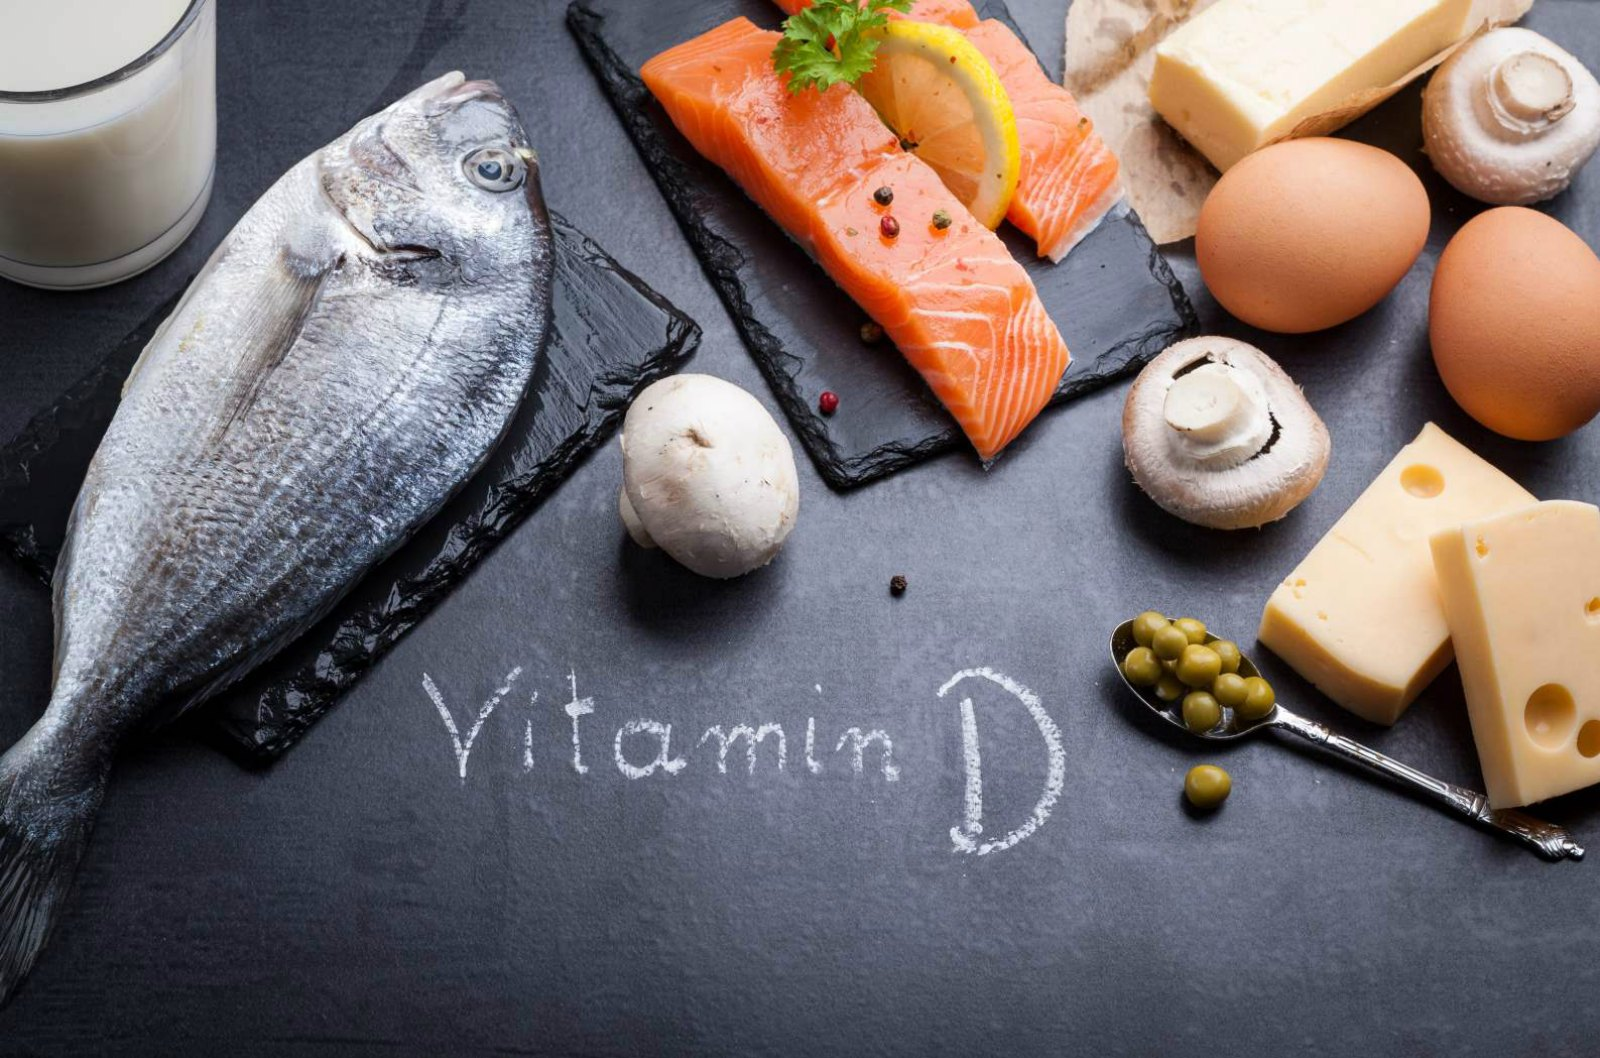 Synthetic Vitamin D Protects Bone Strength in Kidney Failure Patients